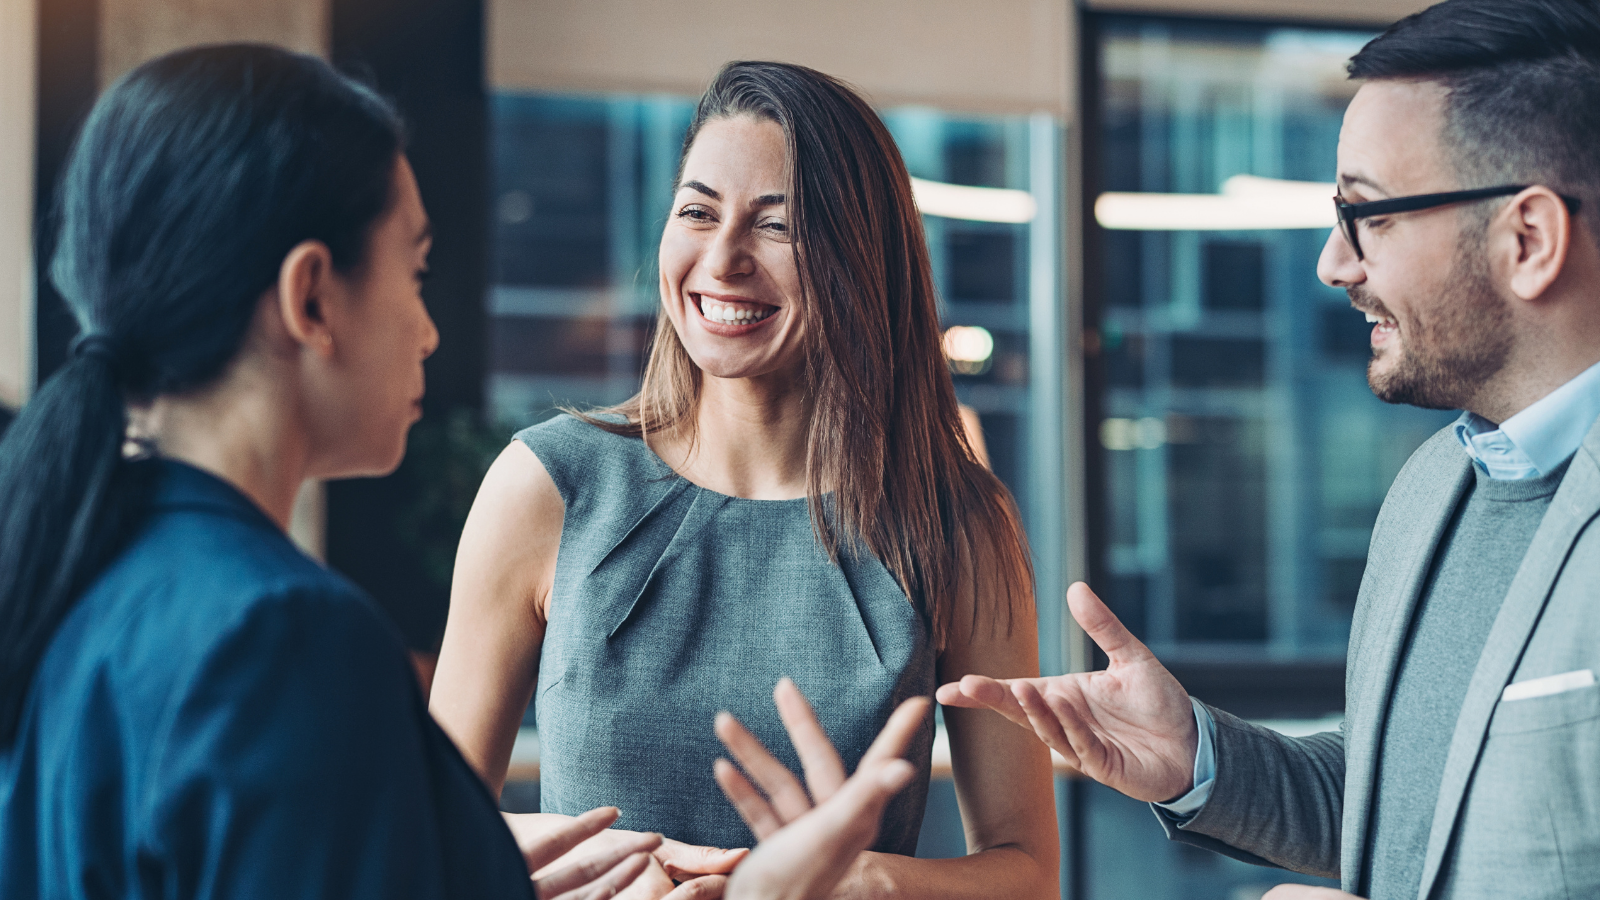 A shy girl's guide to networking